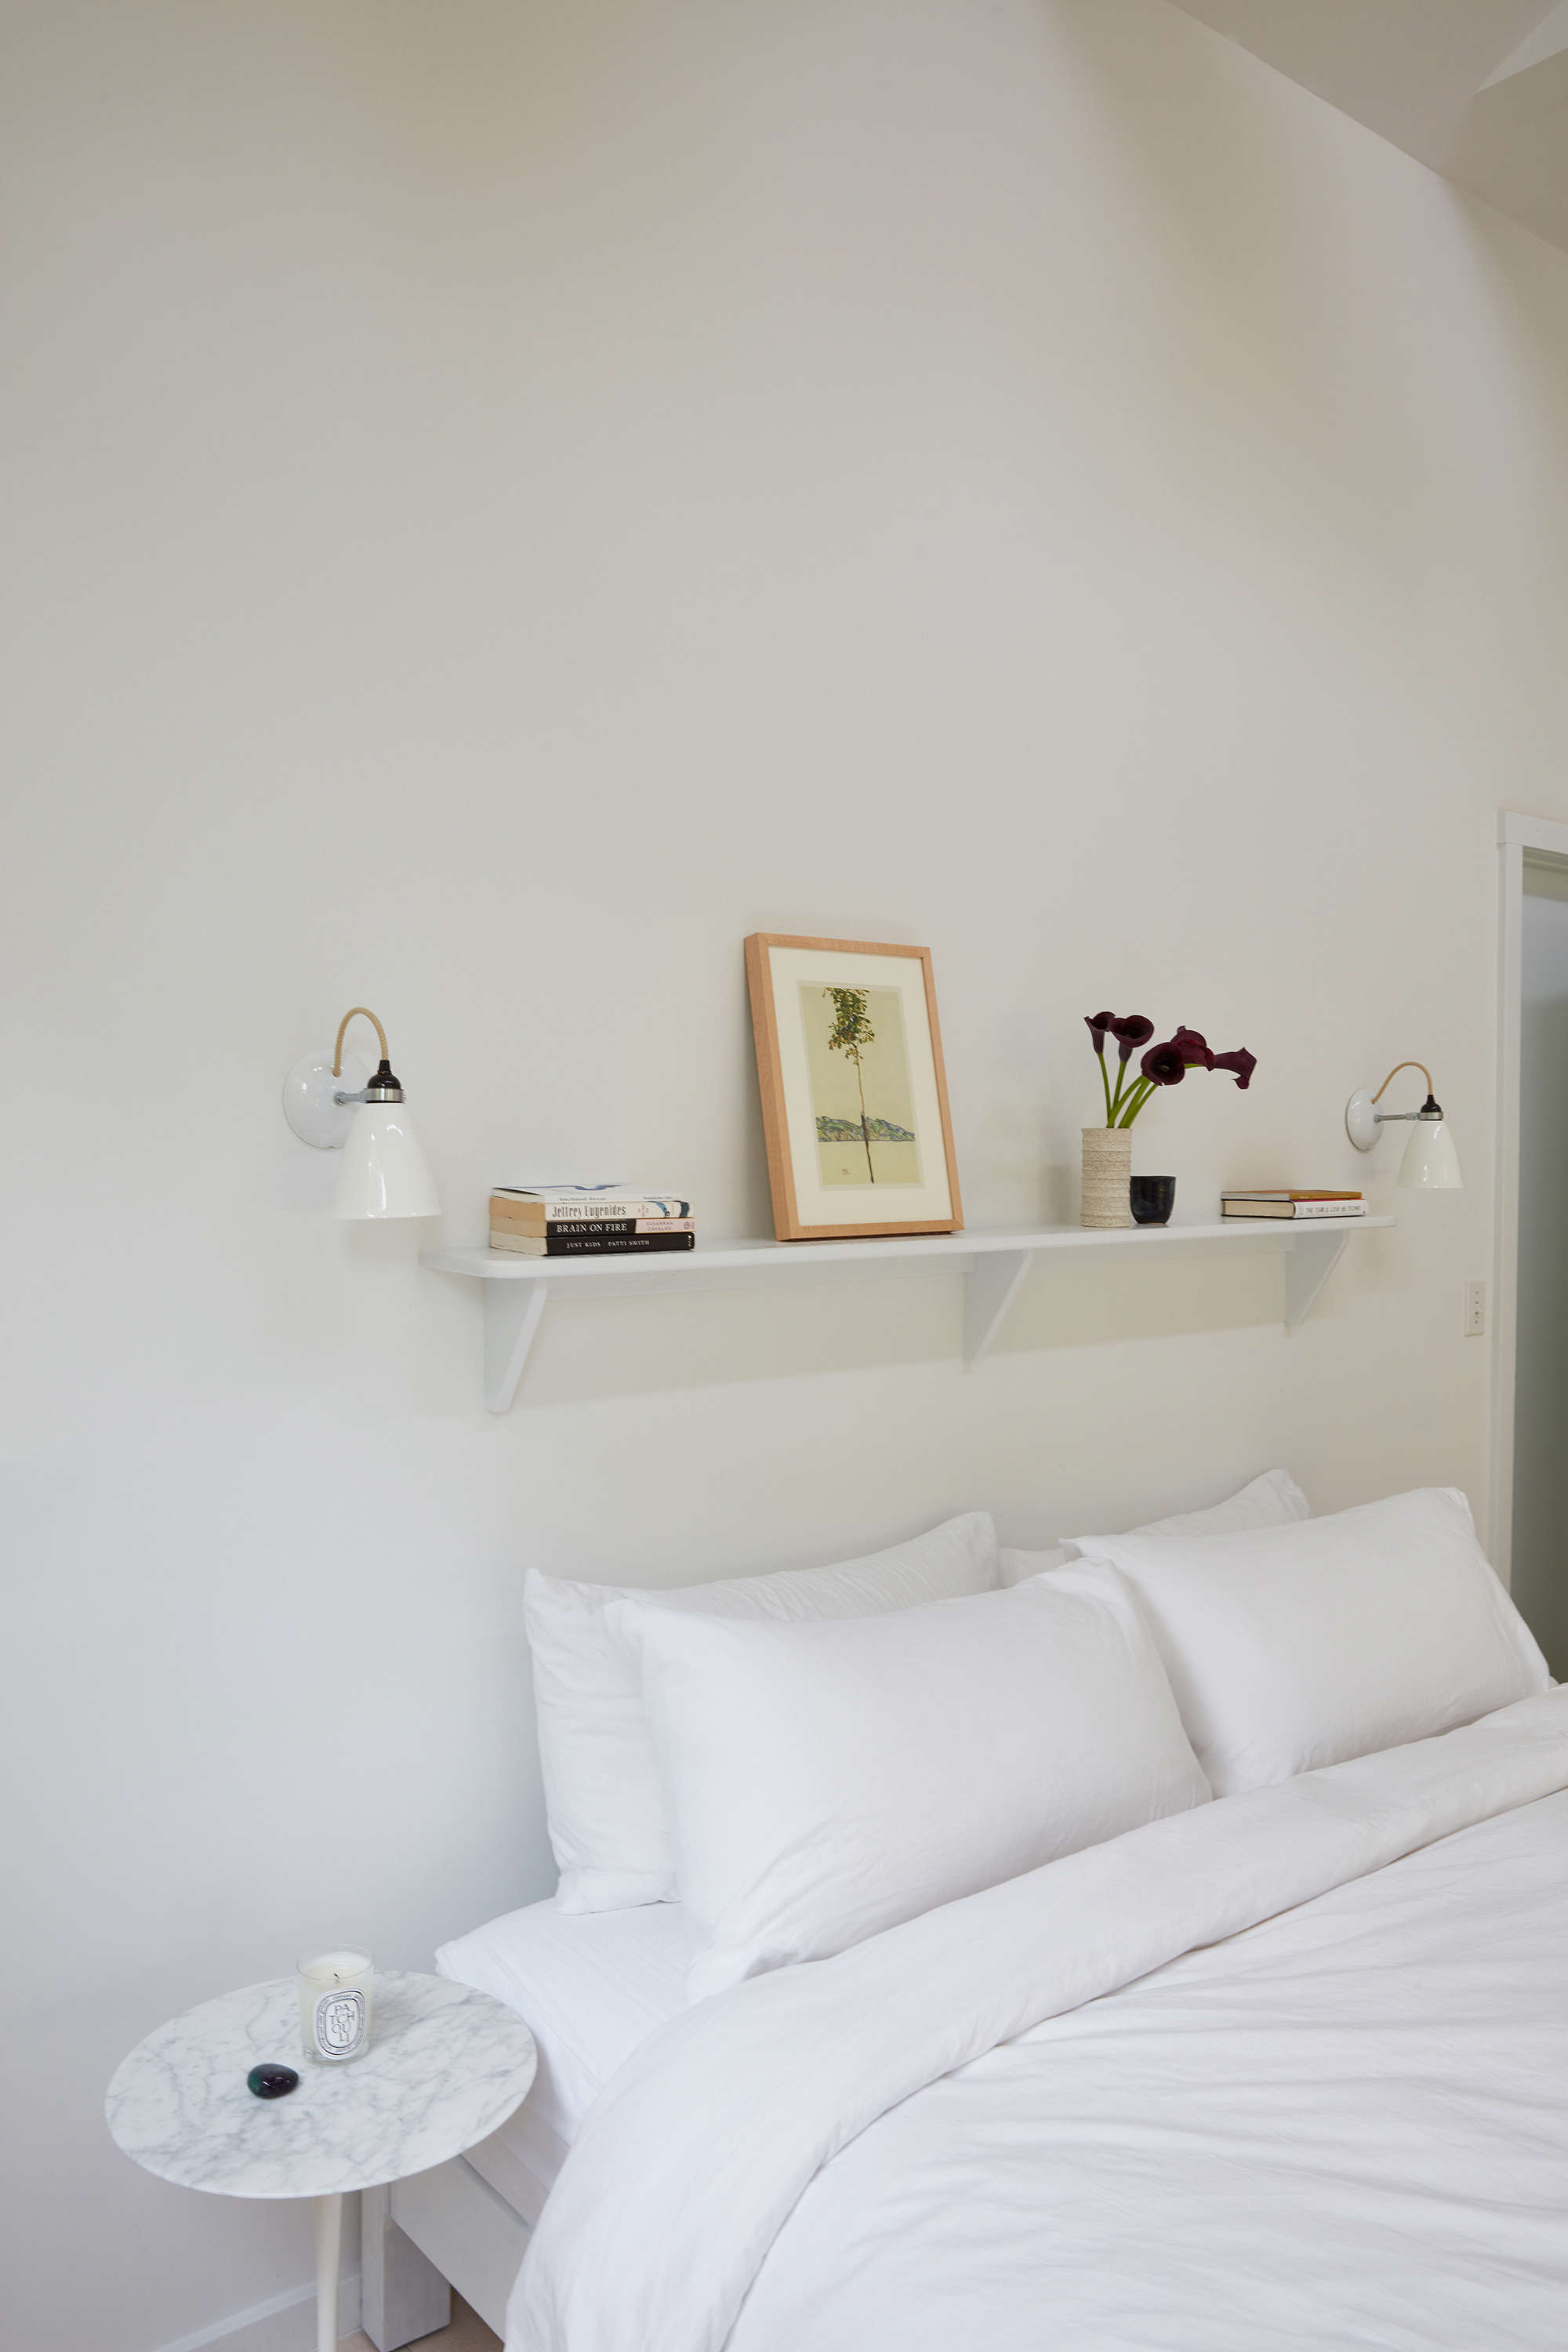 The original shelf above the bed got a fresh coat of white paintand are framed by a pair ofHector Wall SconcesfromDesign Within Reach.